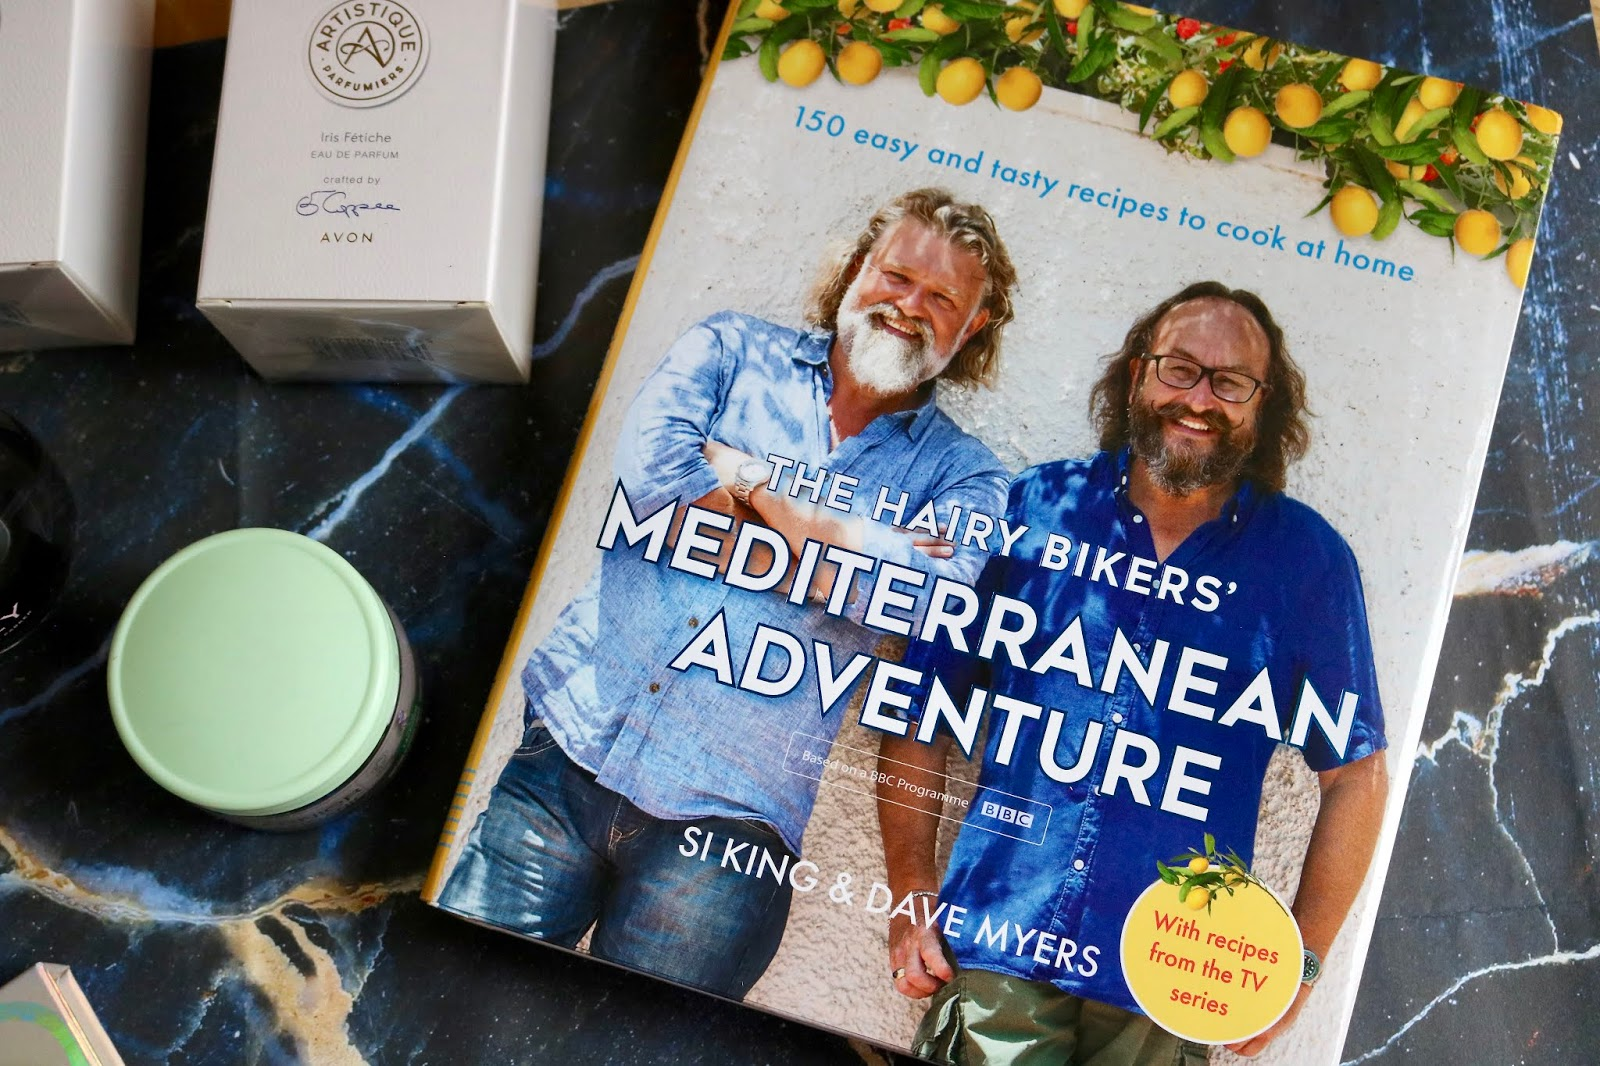 THE HAIRY BIKER'S MEDITERRANEAN ADVENTURE